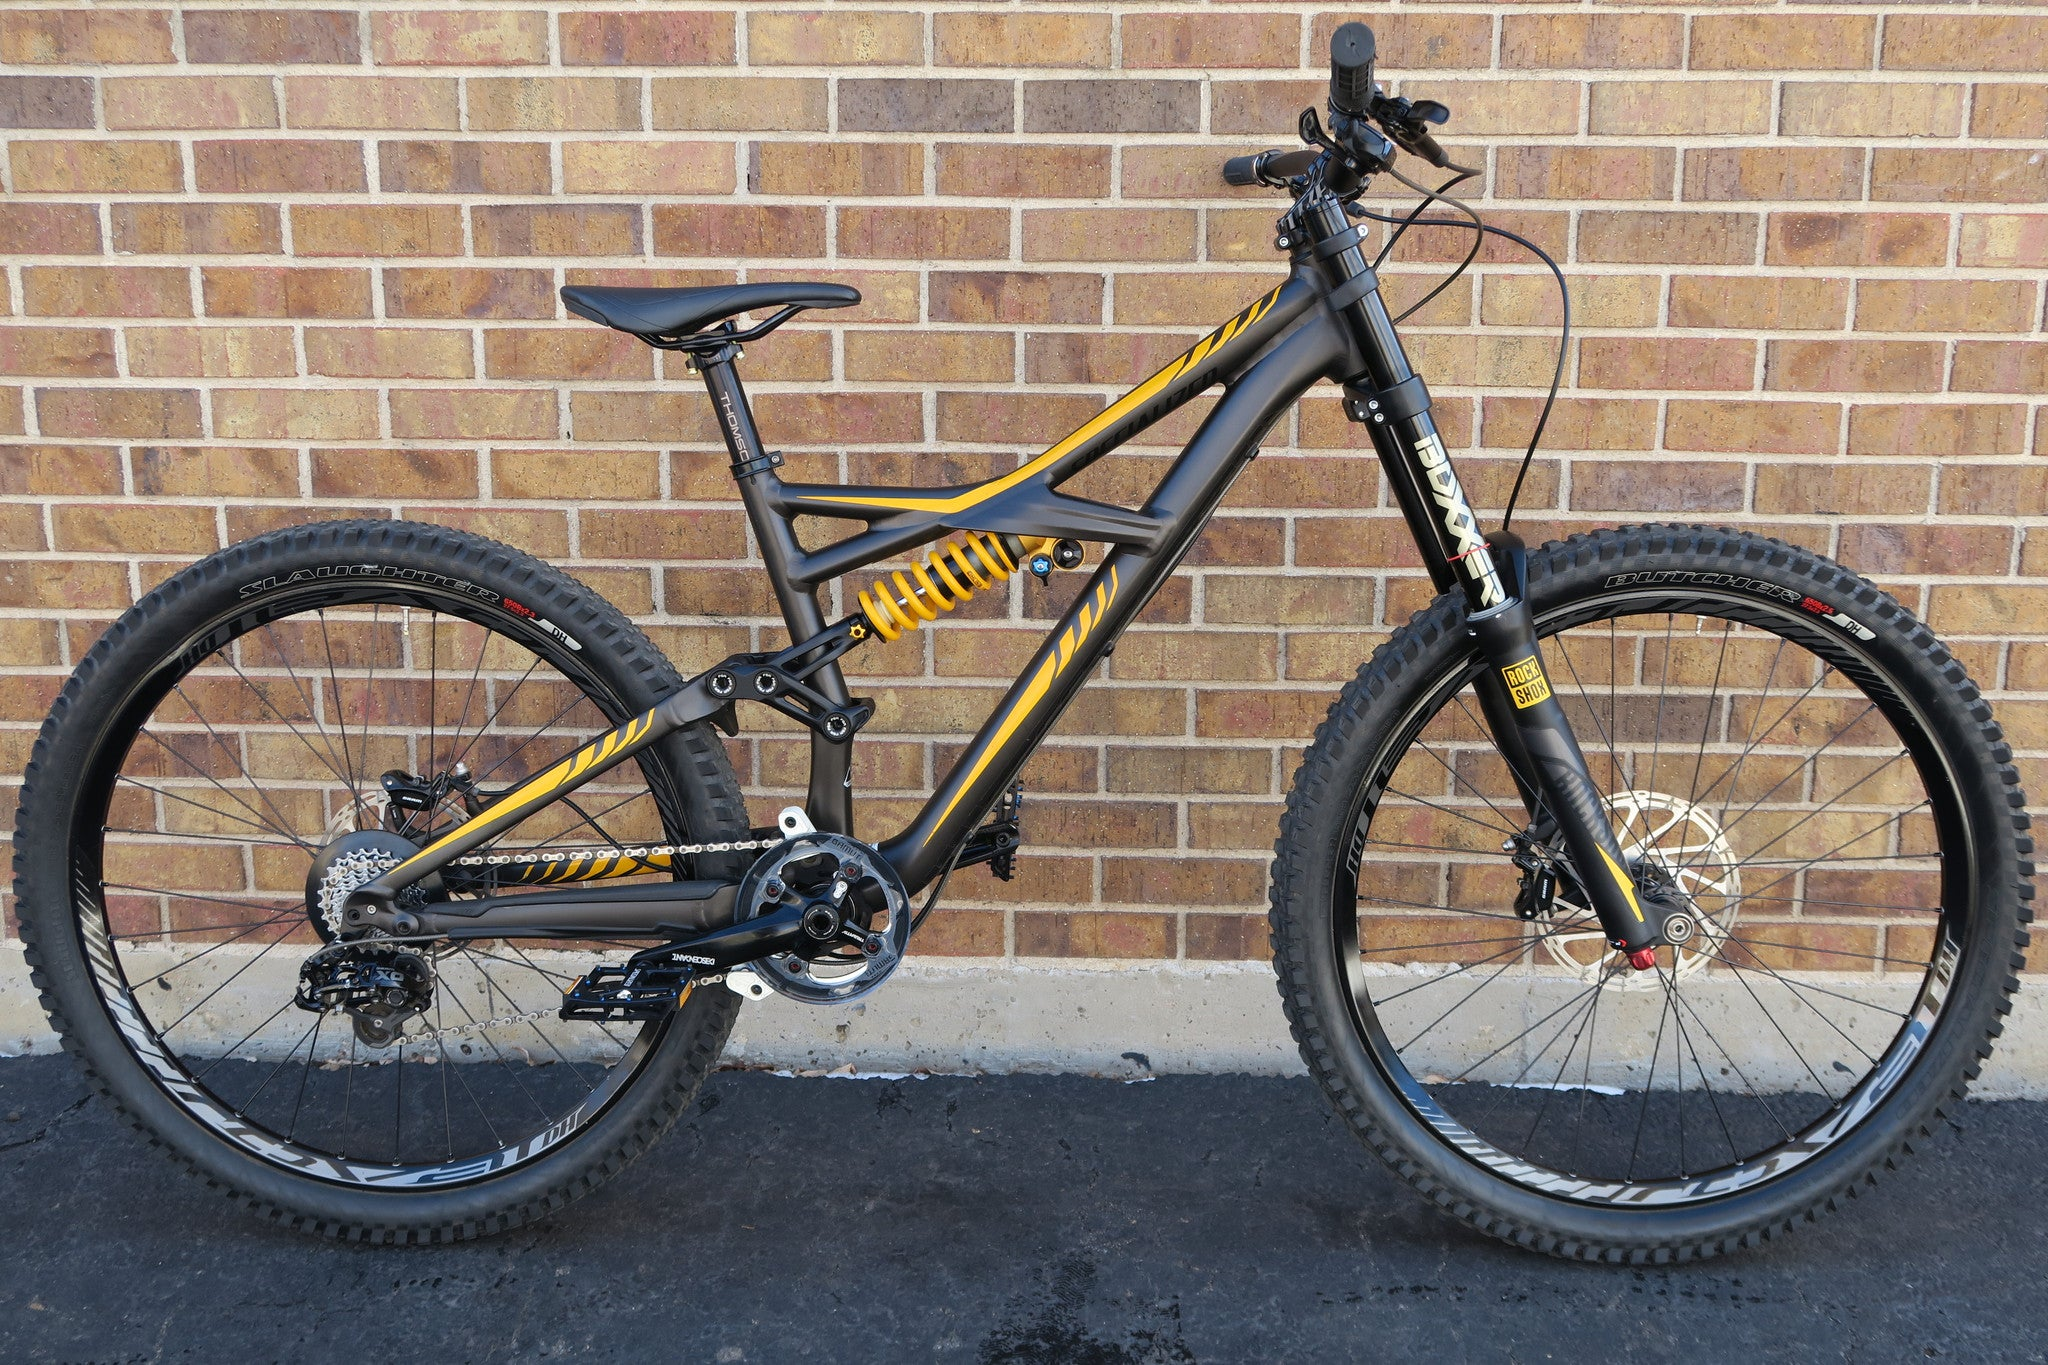 2015 SPECIALIZED ENDURO EXPERT EVO 650B